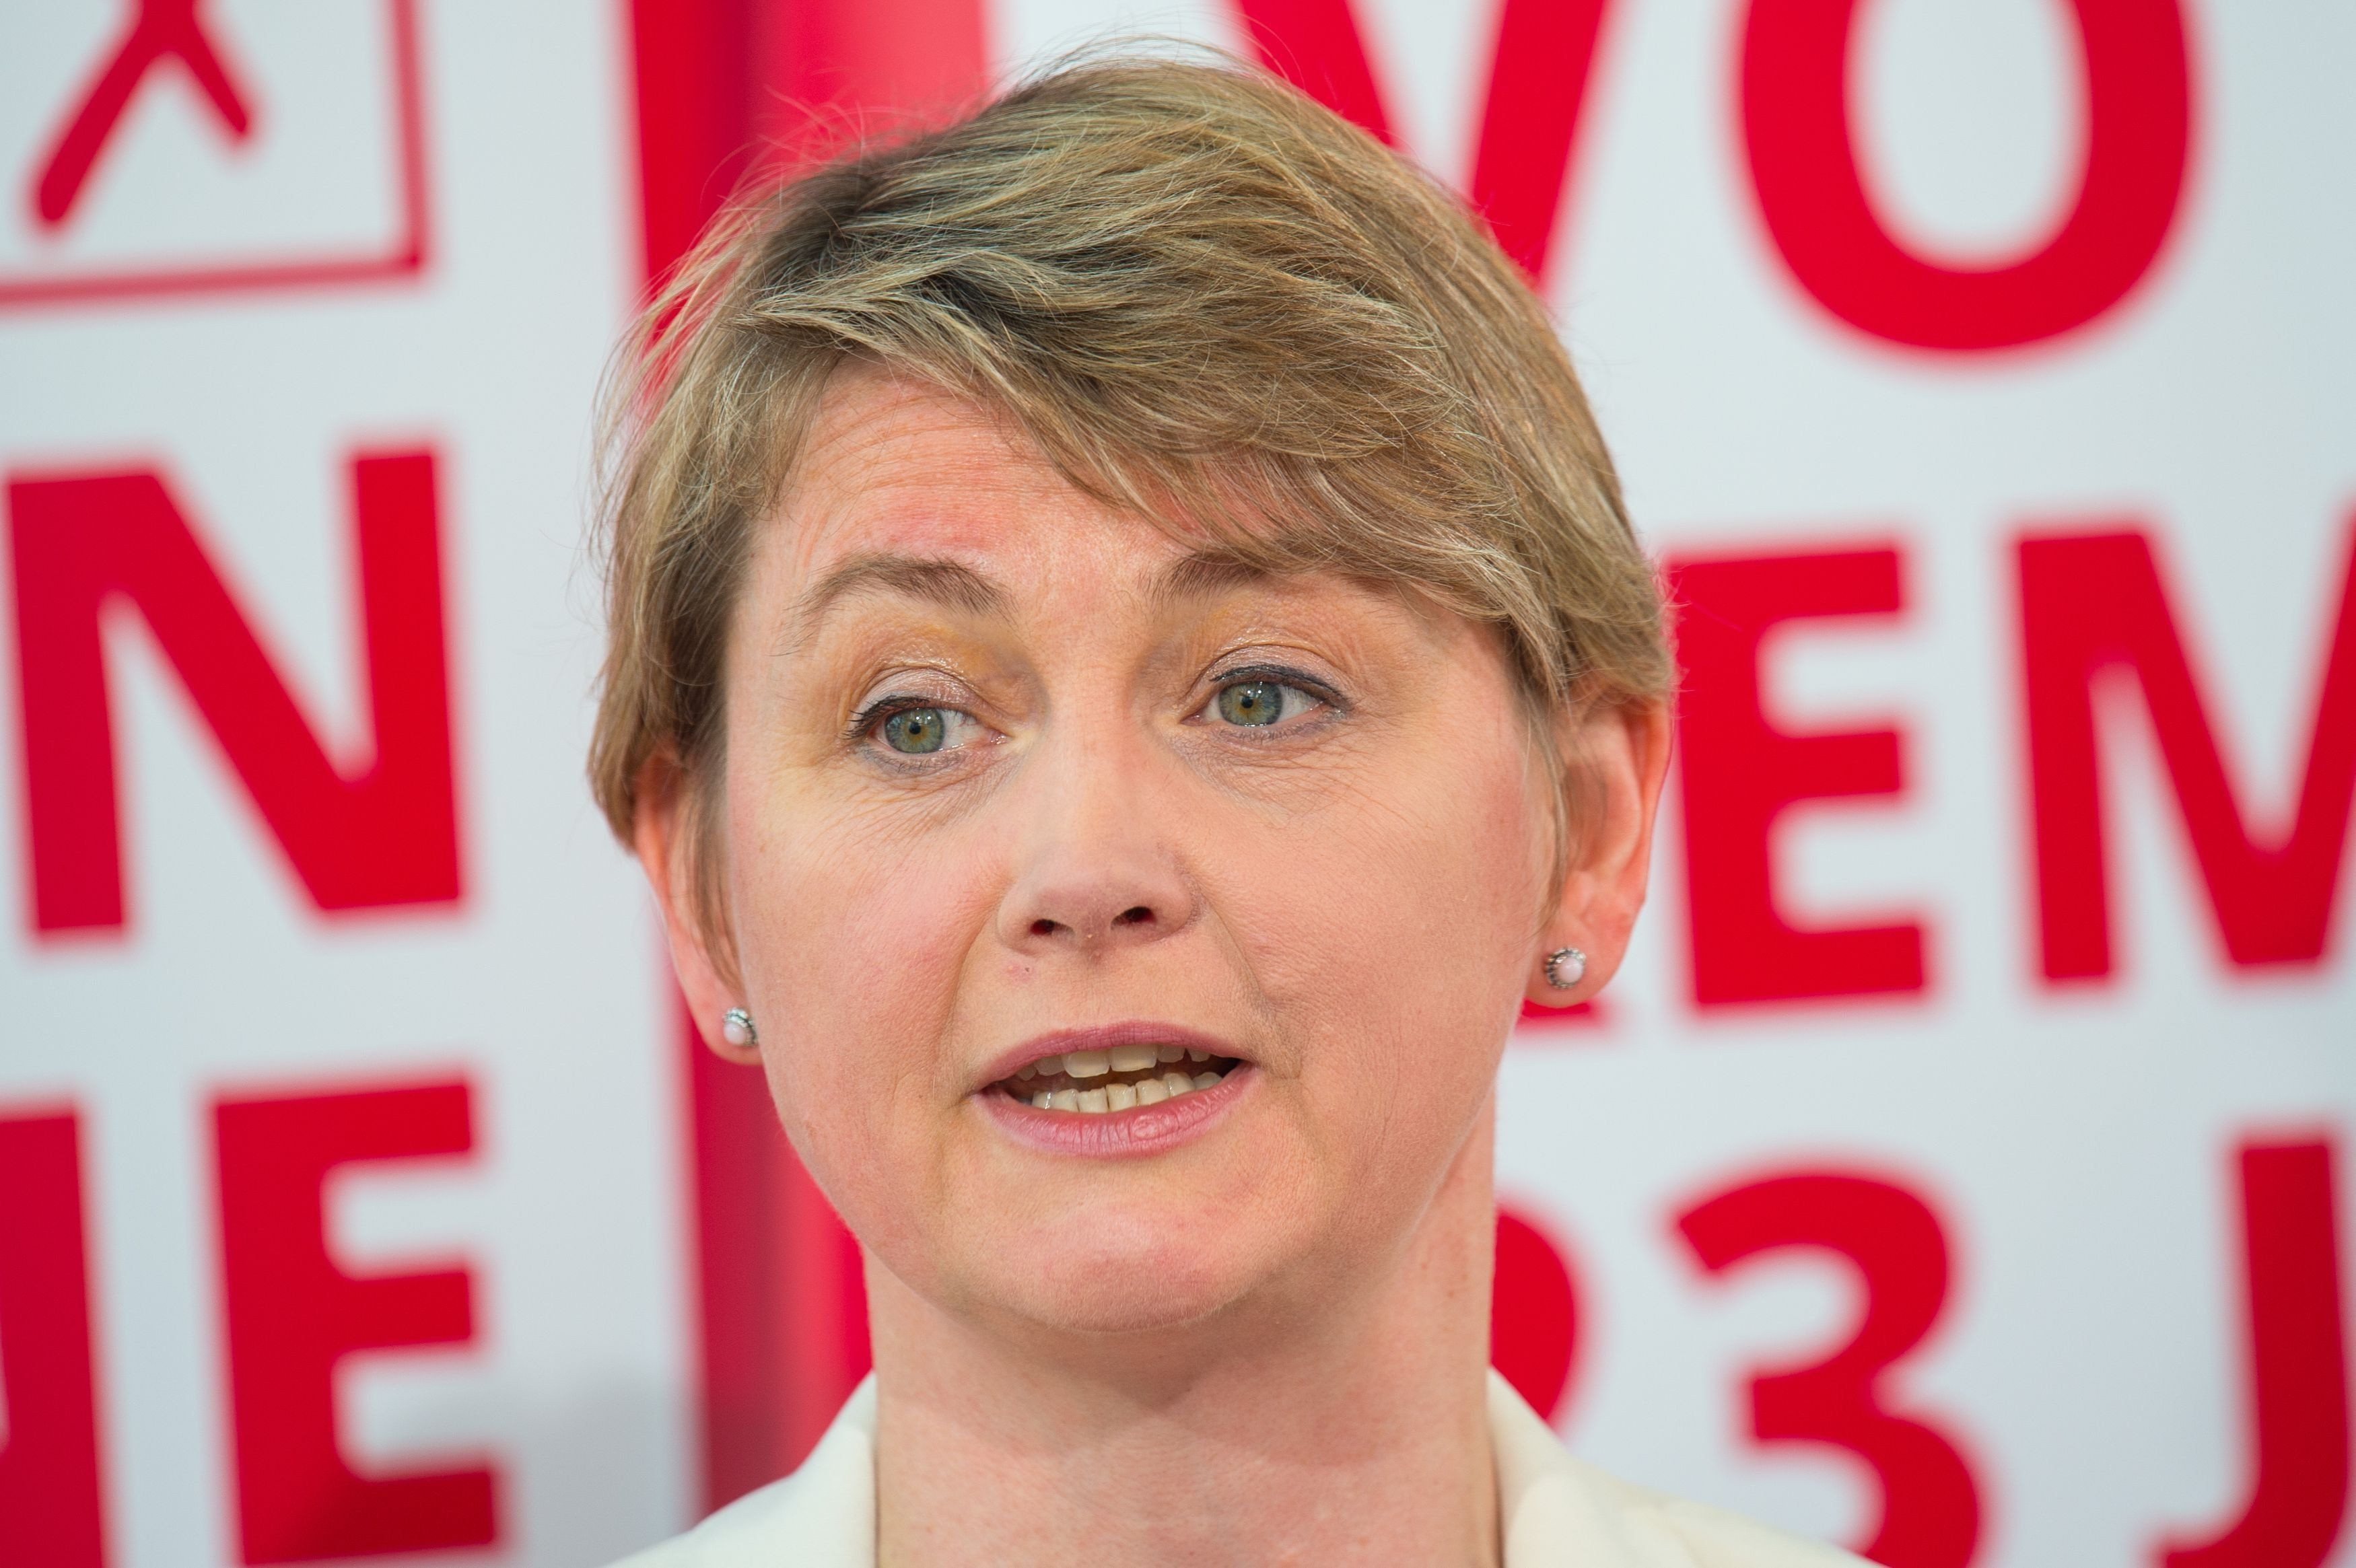 Yvette Cooper has complained to police after receiving death threats on